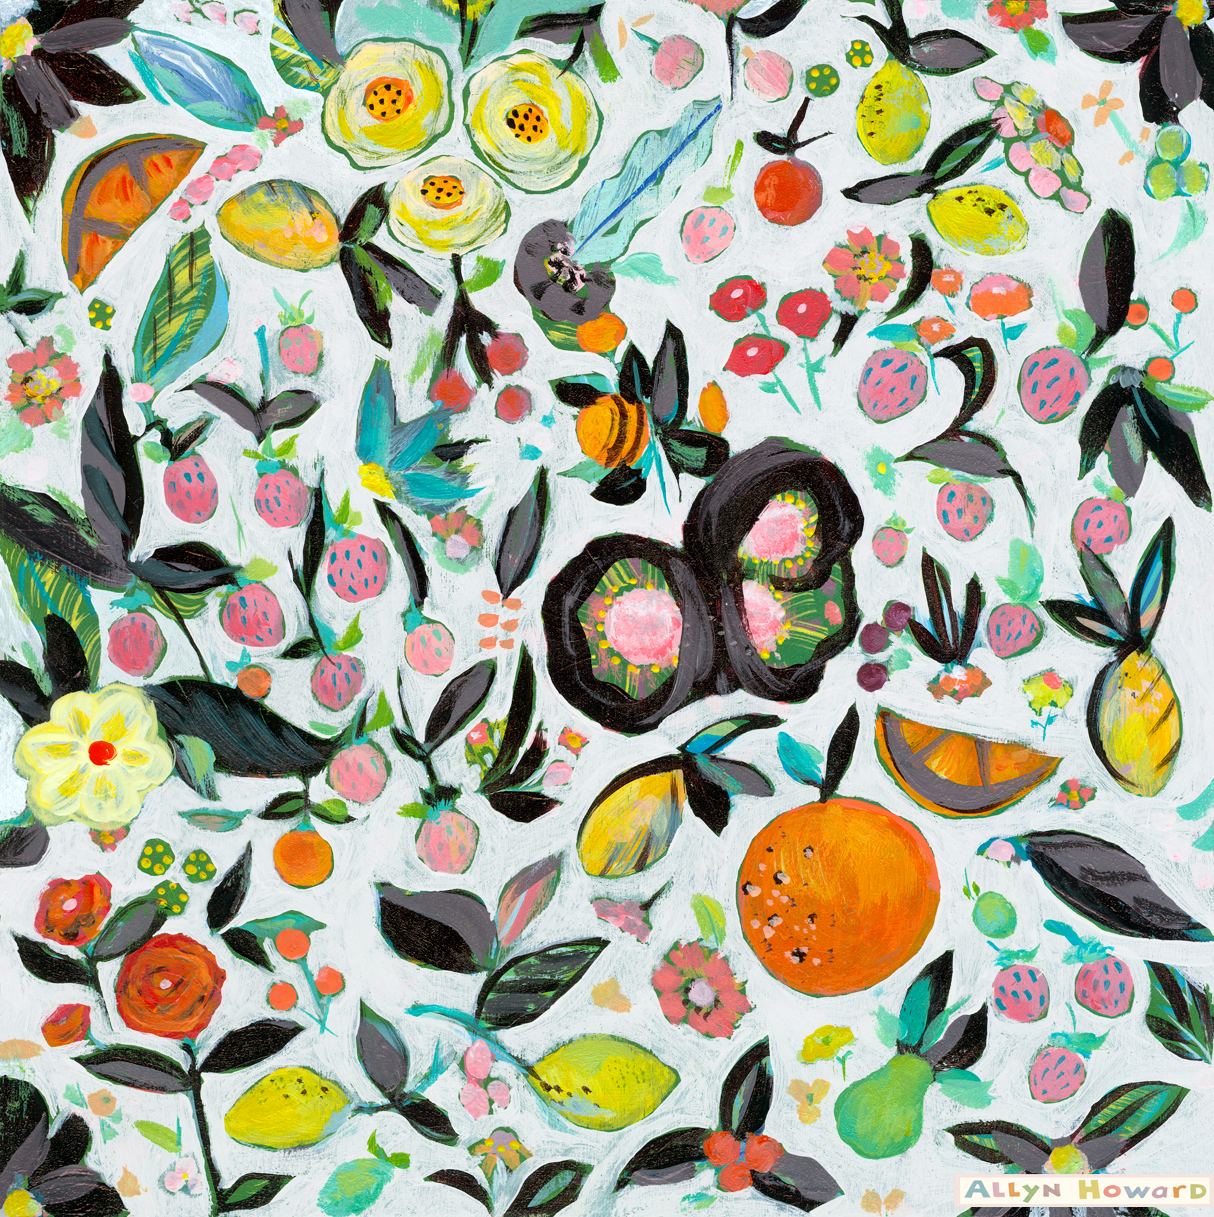 Allyn_Howard_pretty-fruit-n-flowers.jpg